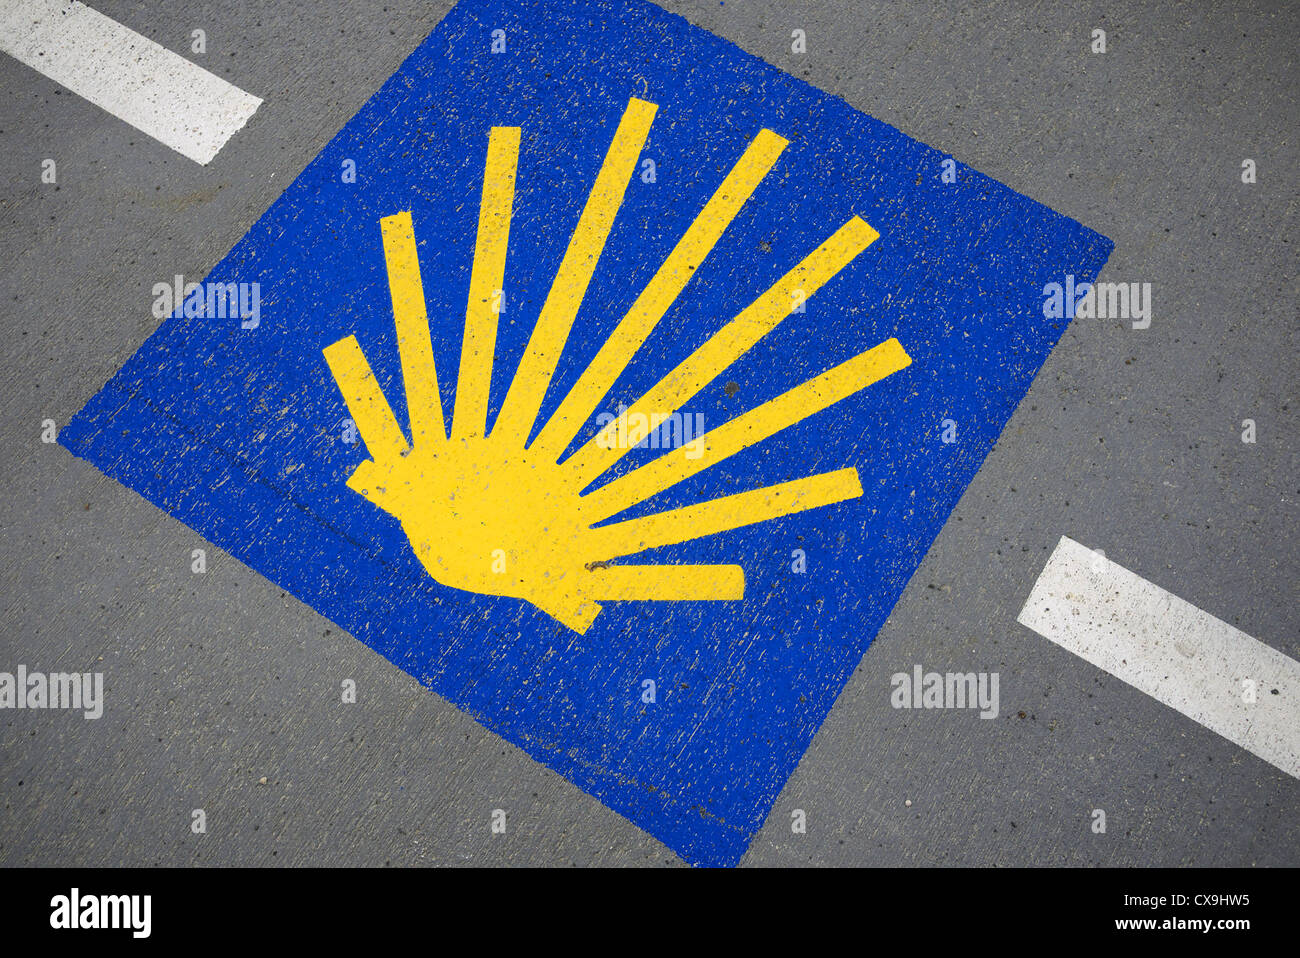 Scallop shell marker for the camino to Santiago painted on the road, Spain. - Stock Image